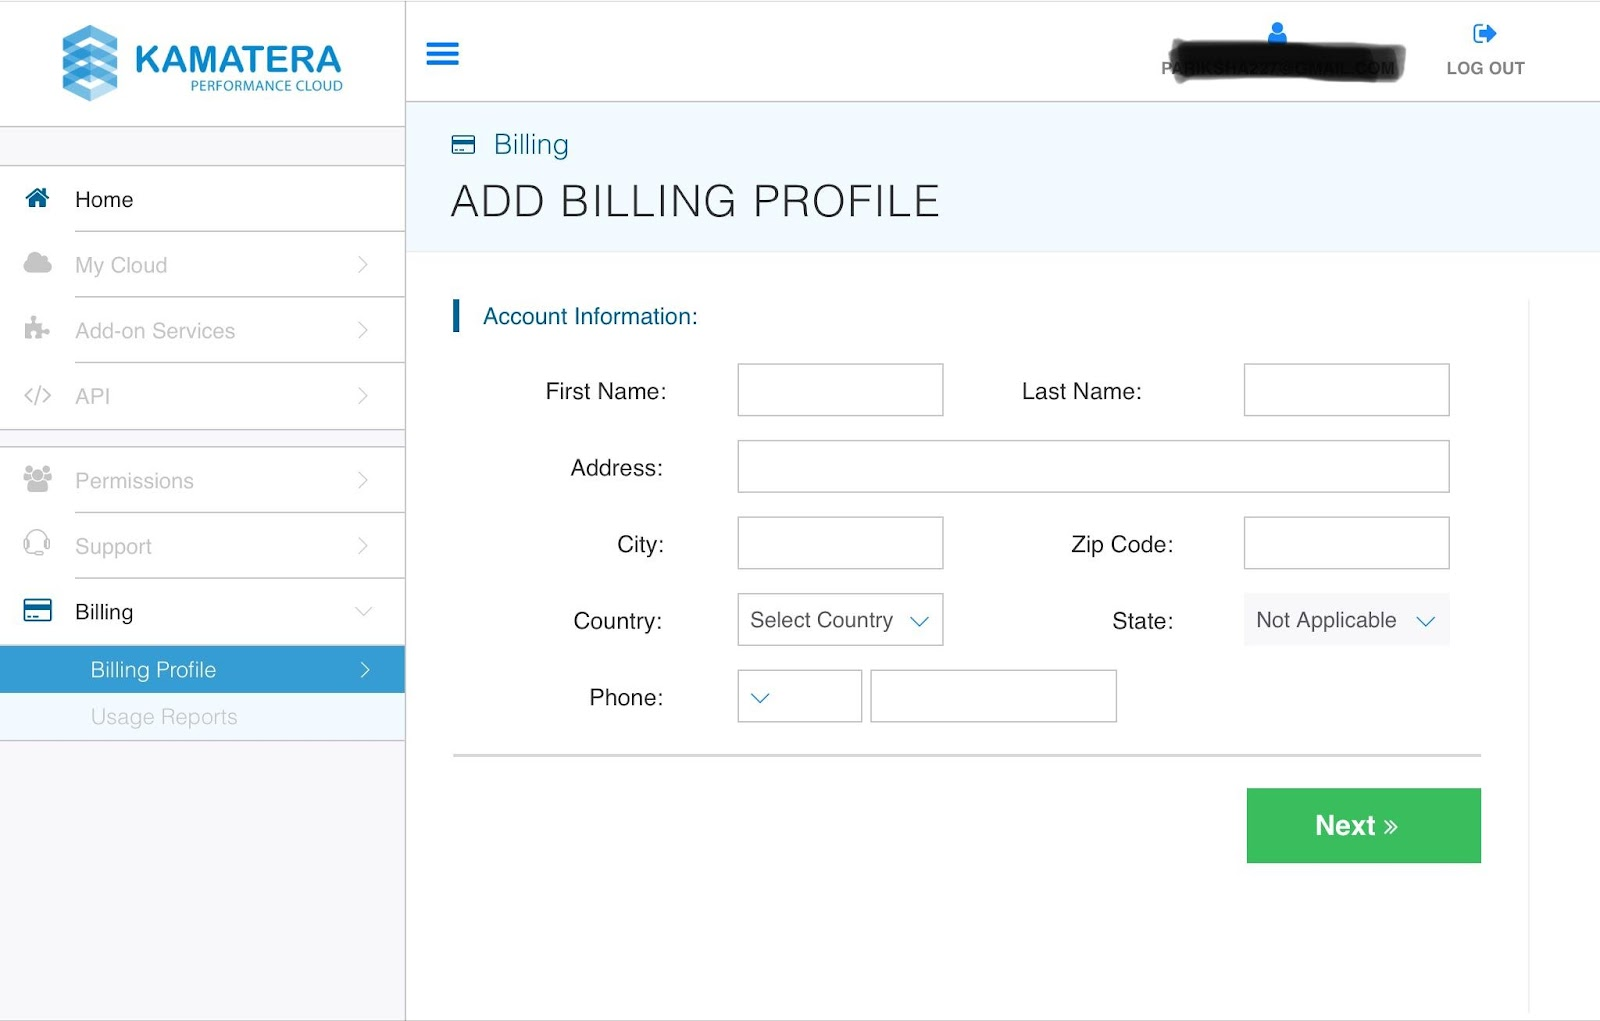 Add billing profile